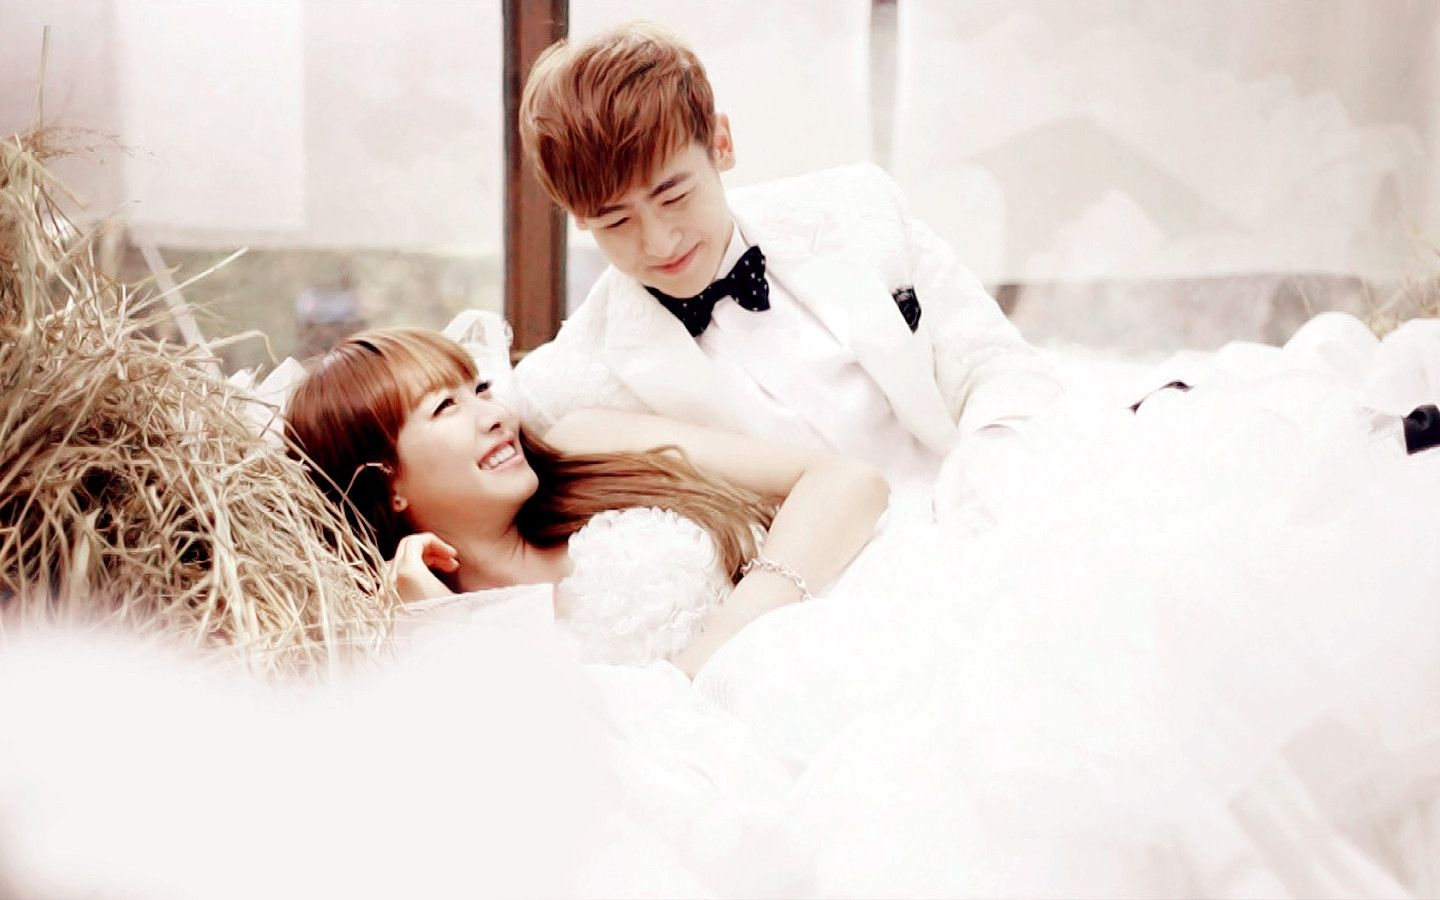 Nichkhun and victoria are they really dating